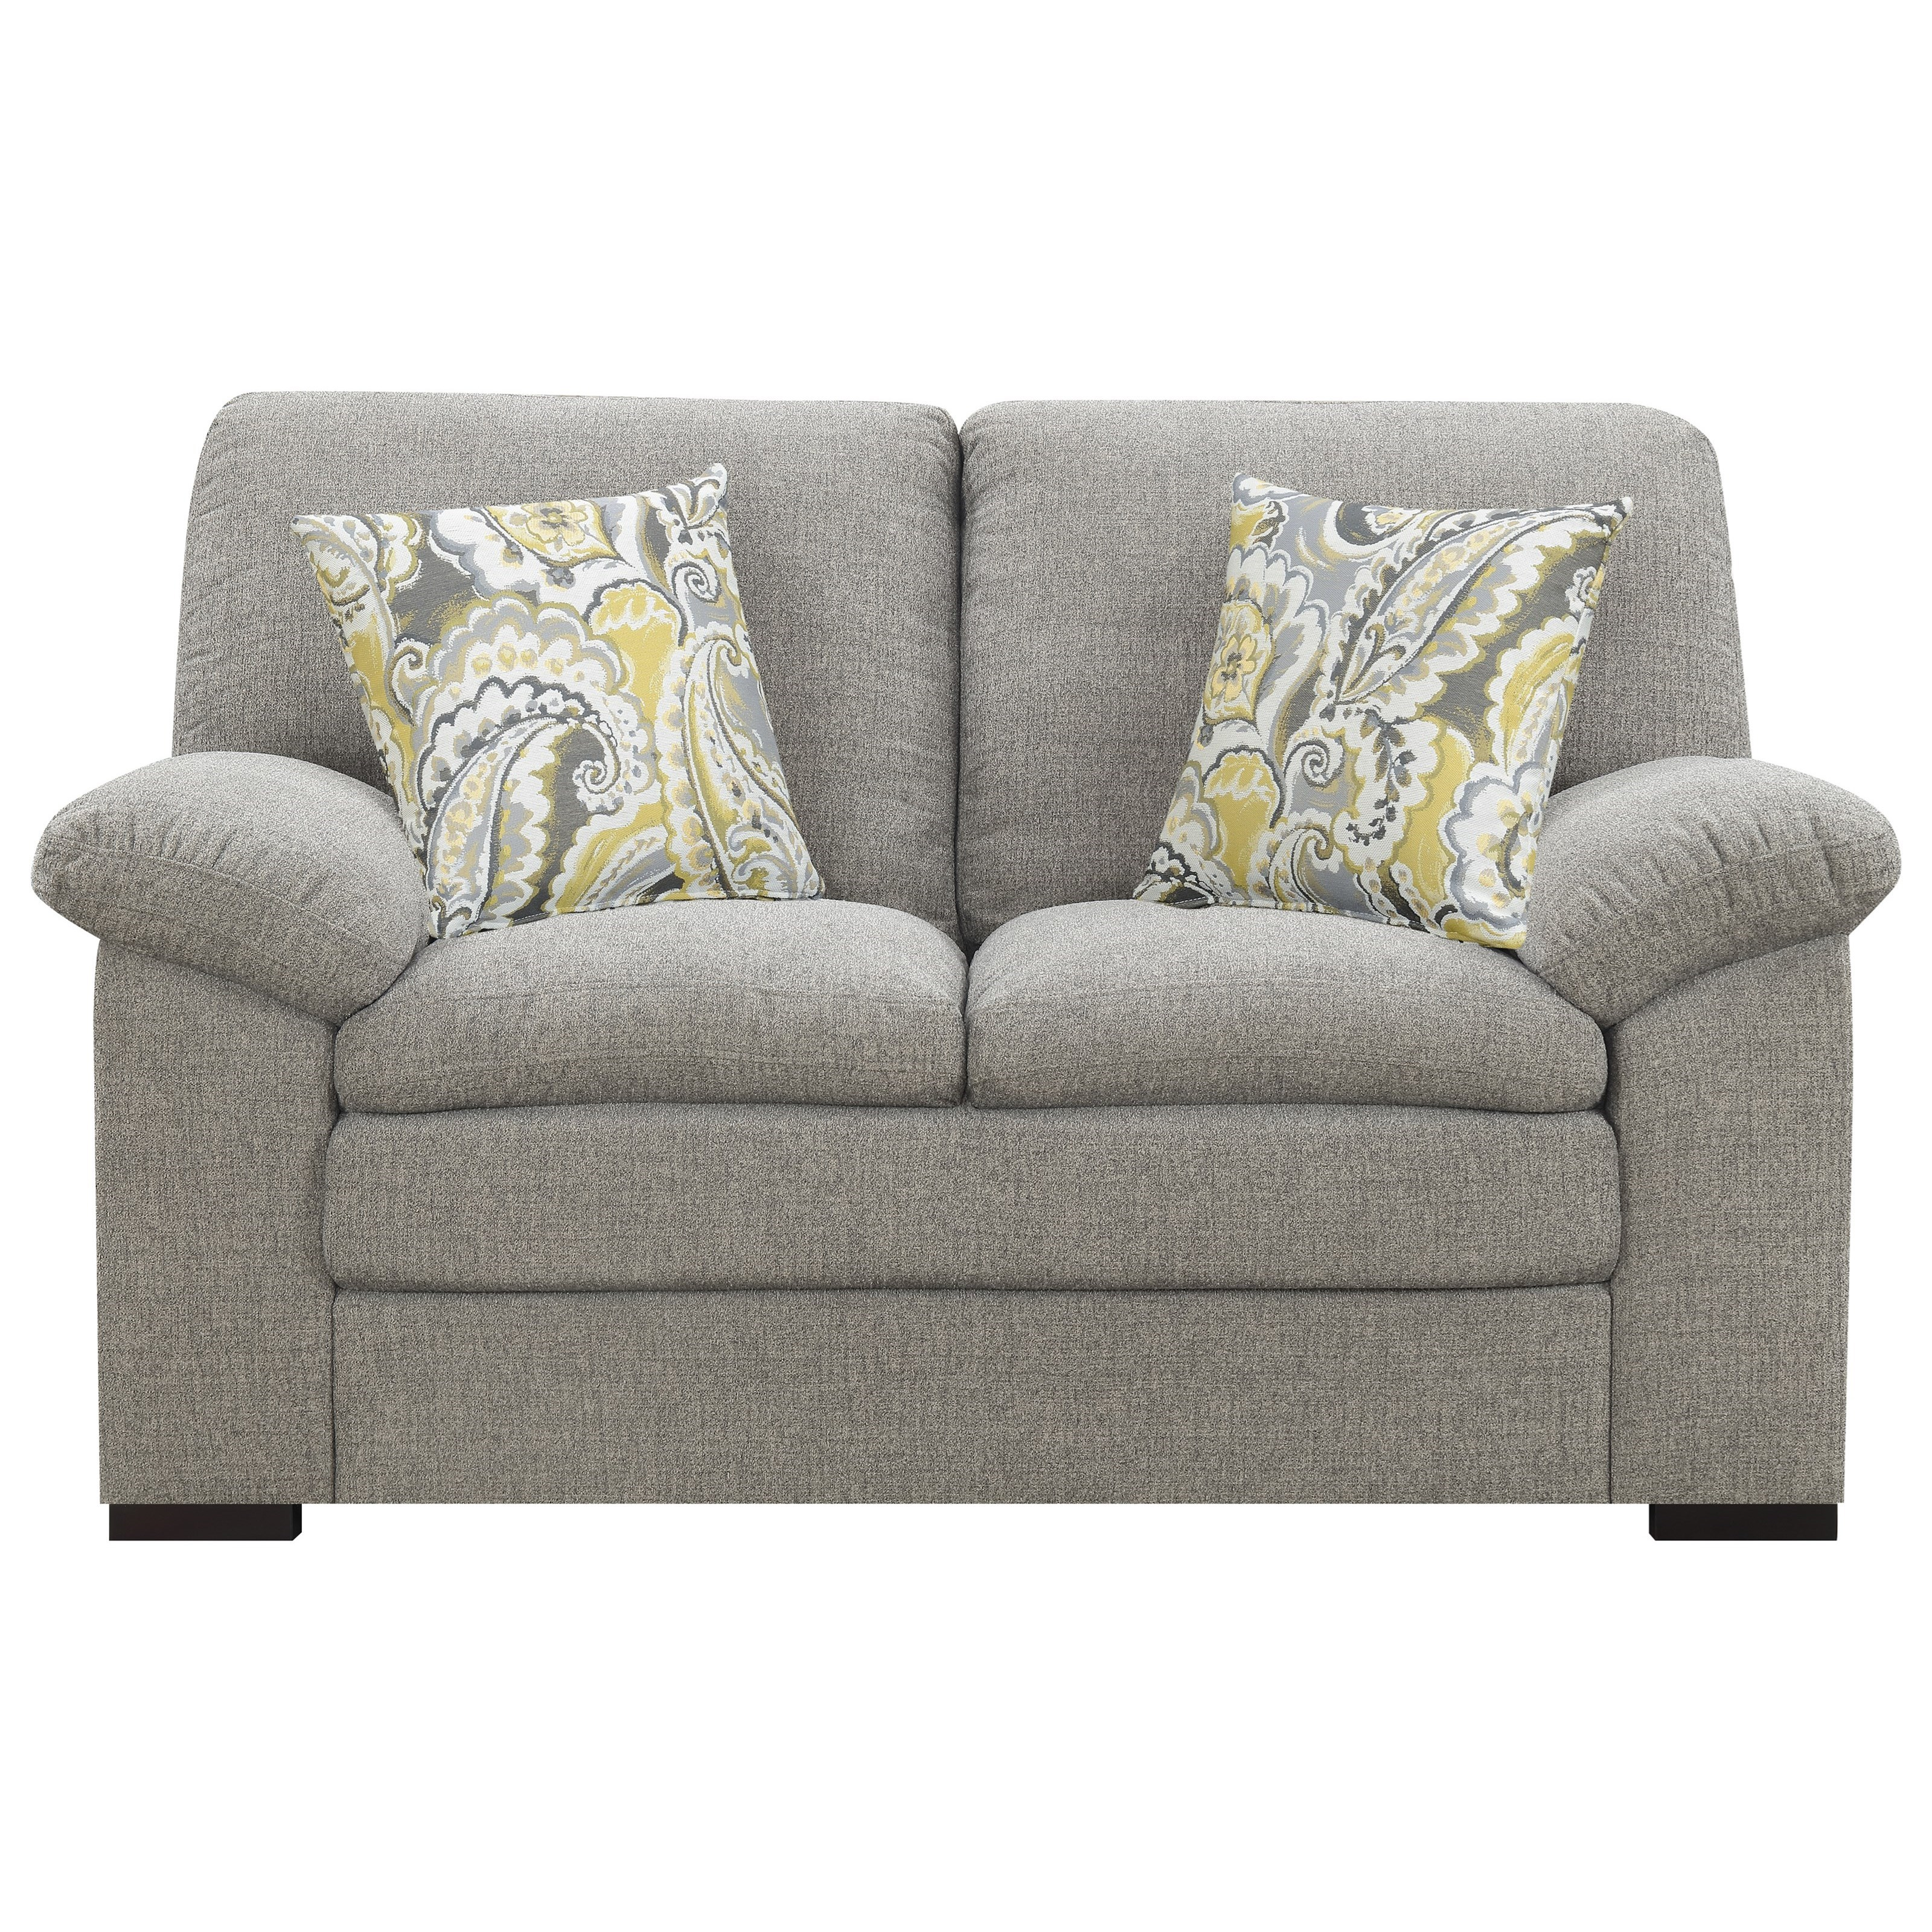 Grandview Loveseat with 2 Accent Pillows by Emerald at Northeast Factory Direct